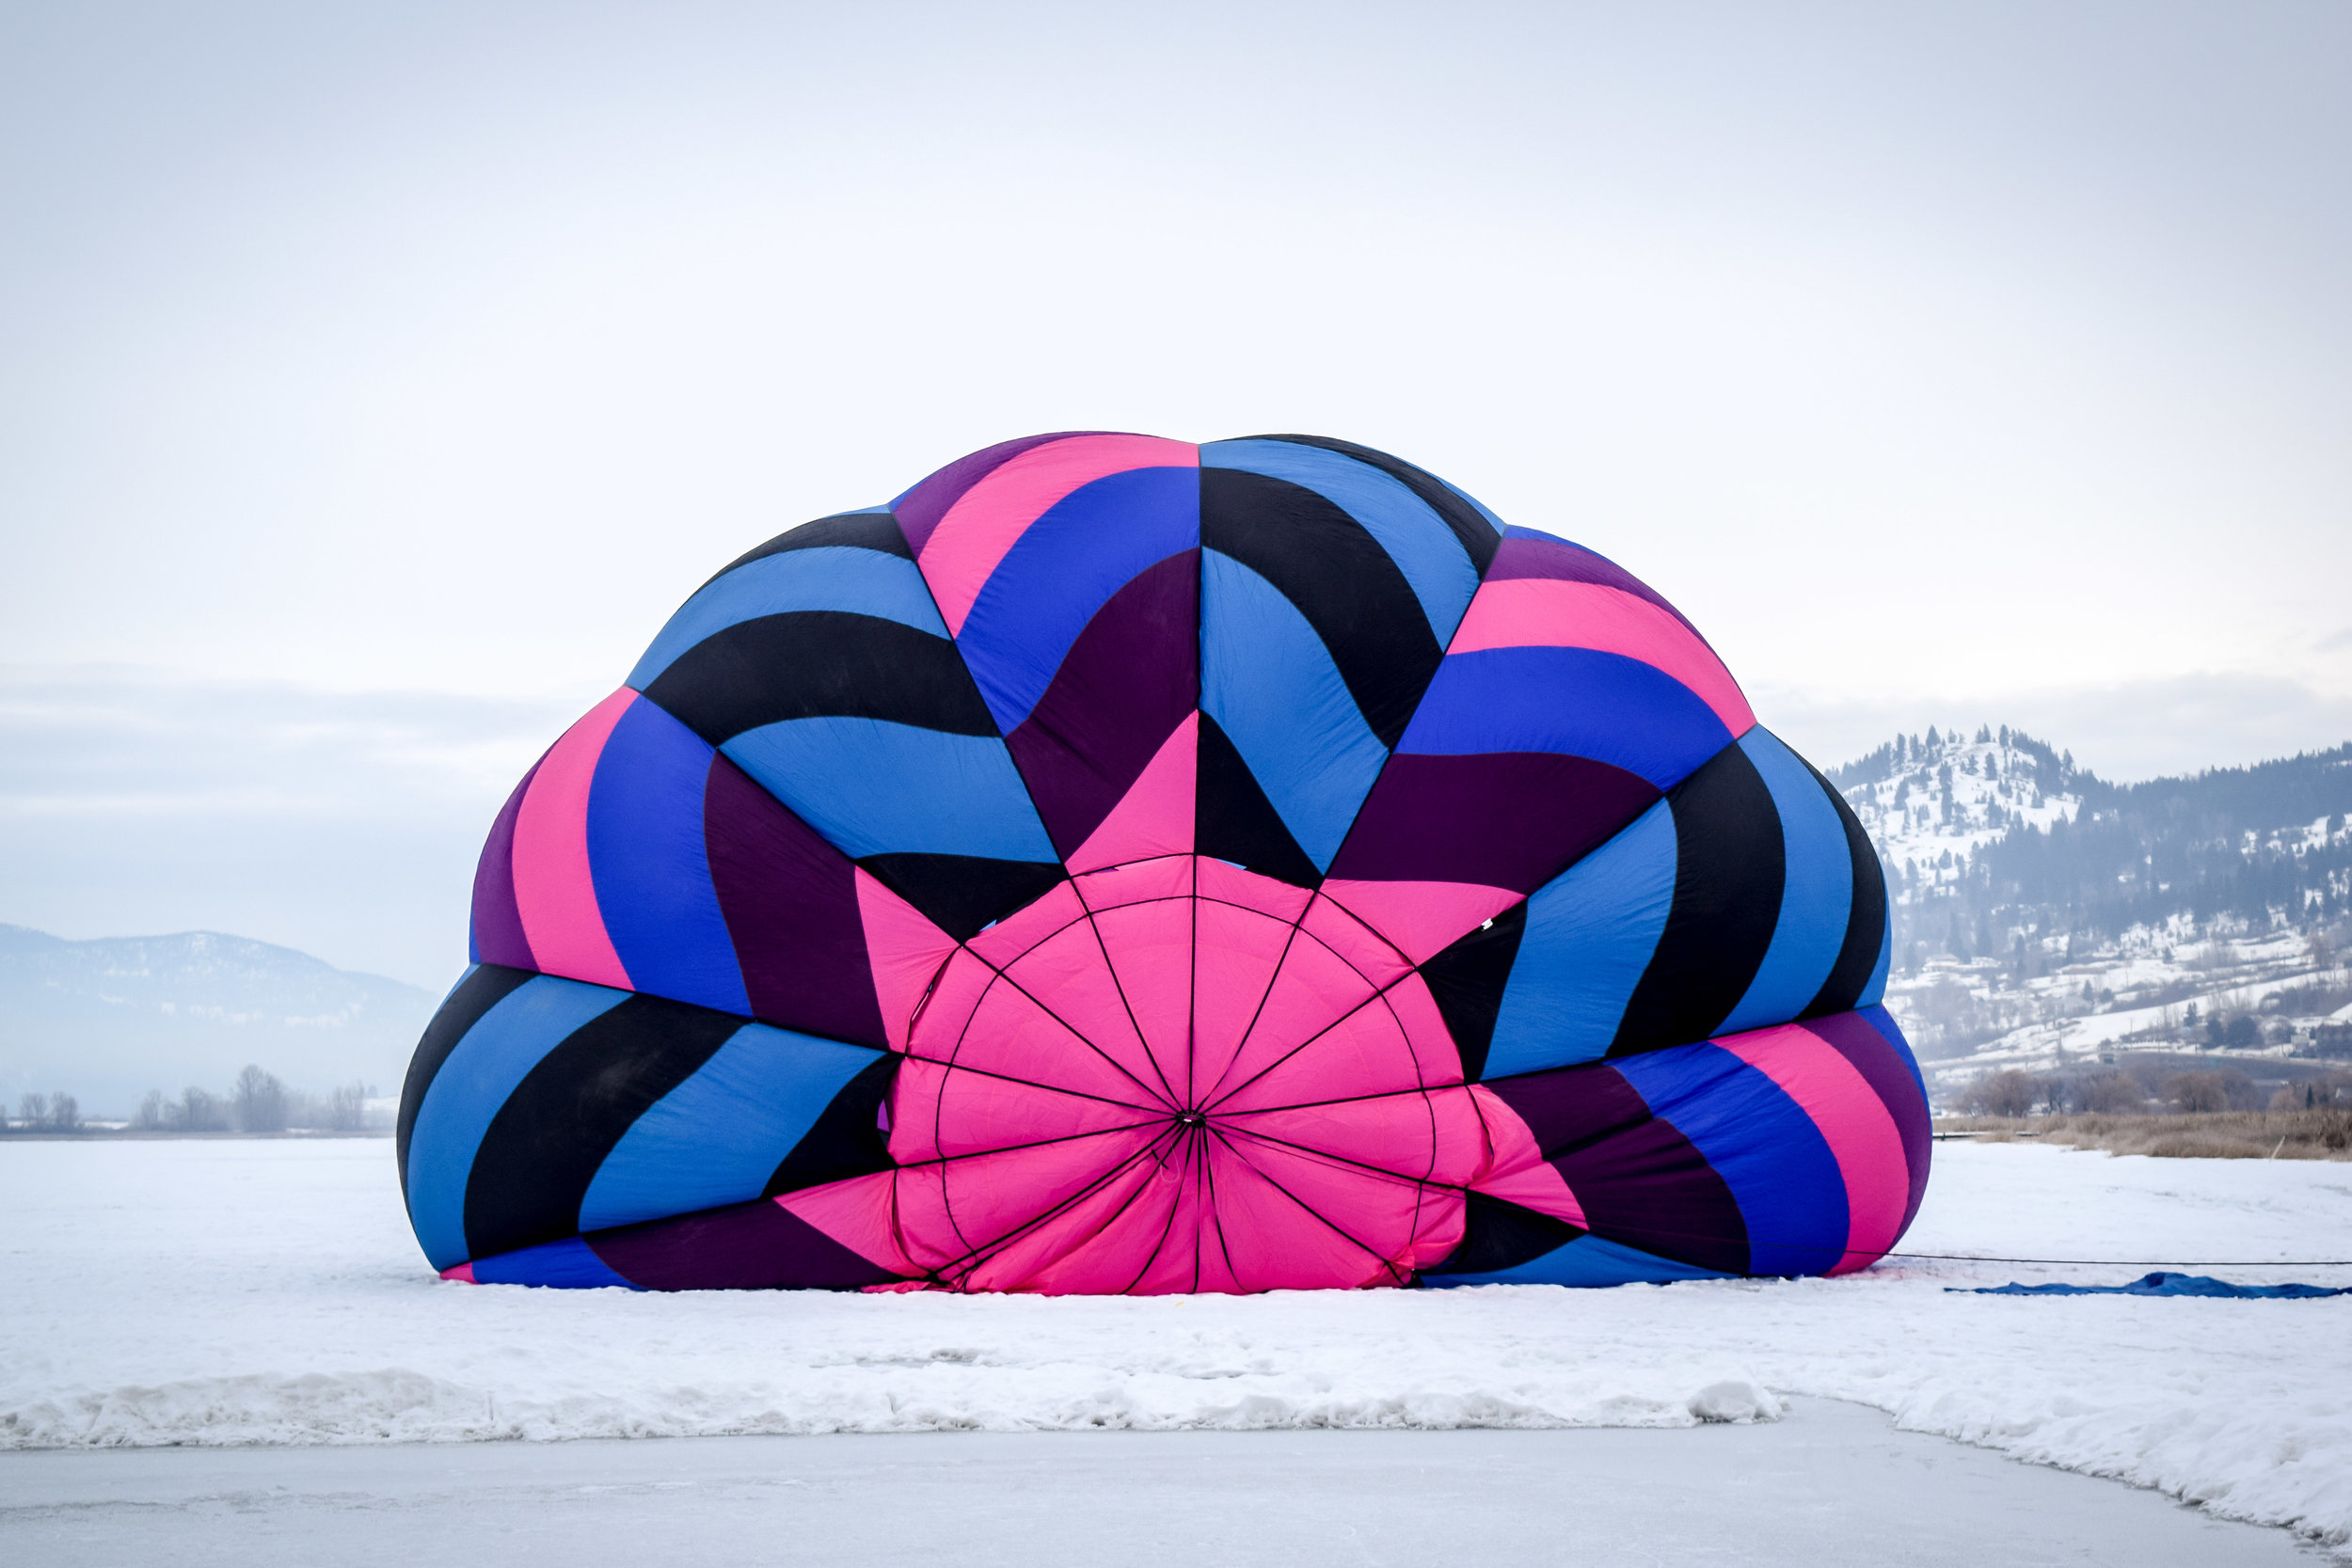 Blowing up a hot air balloon in winter